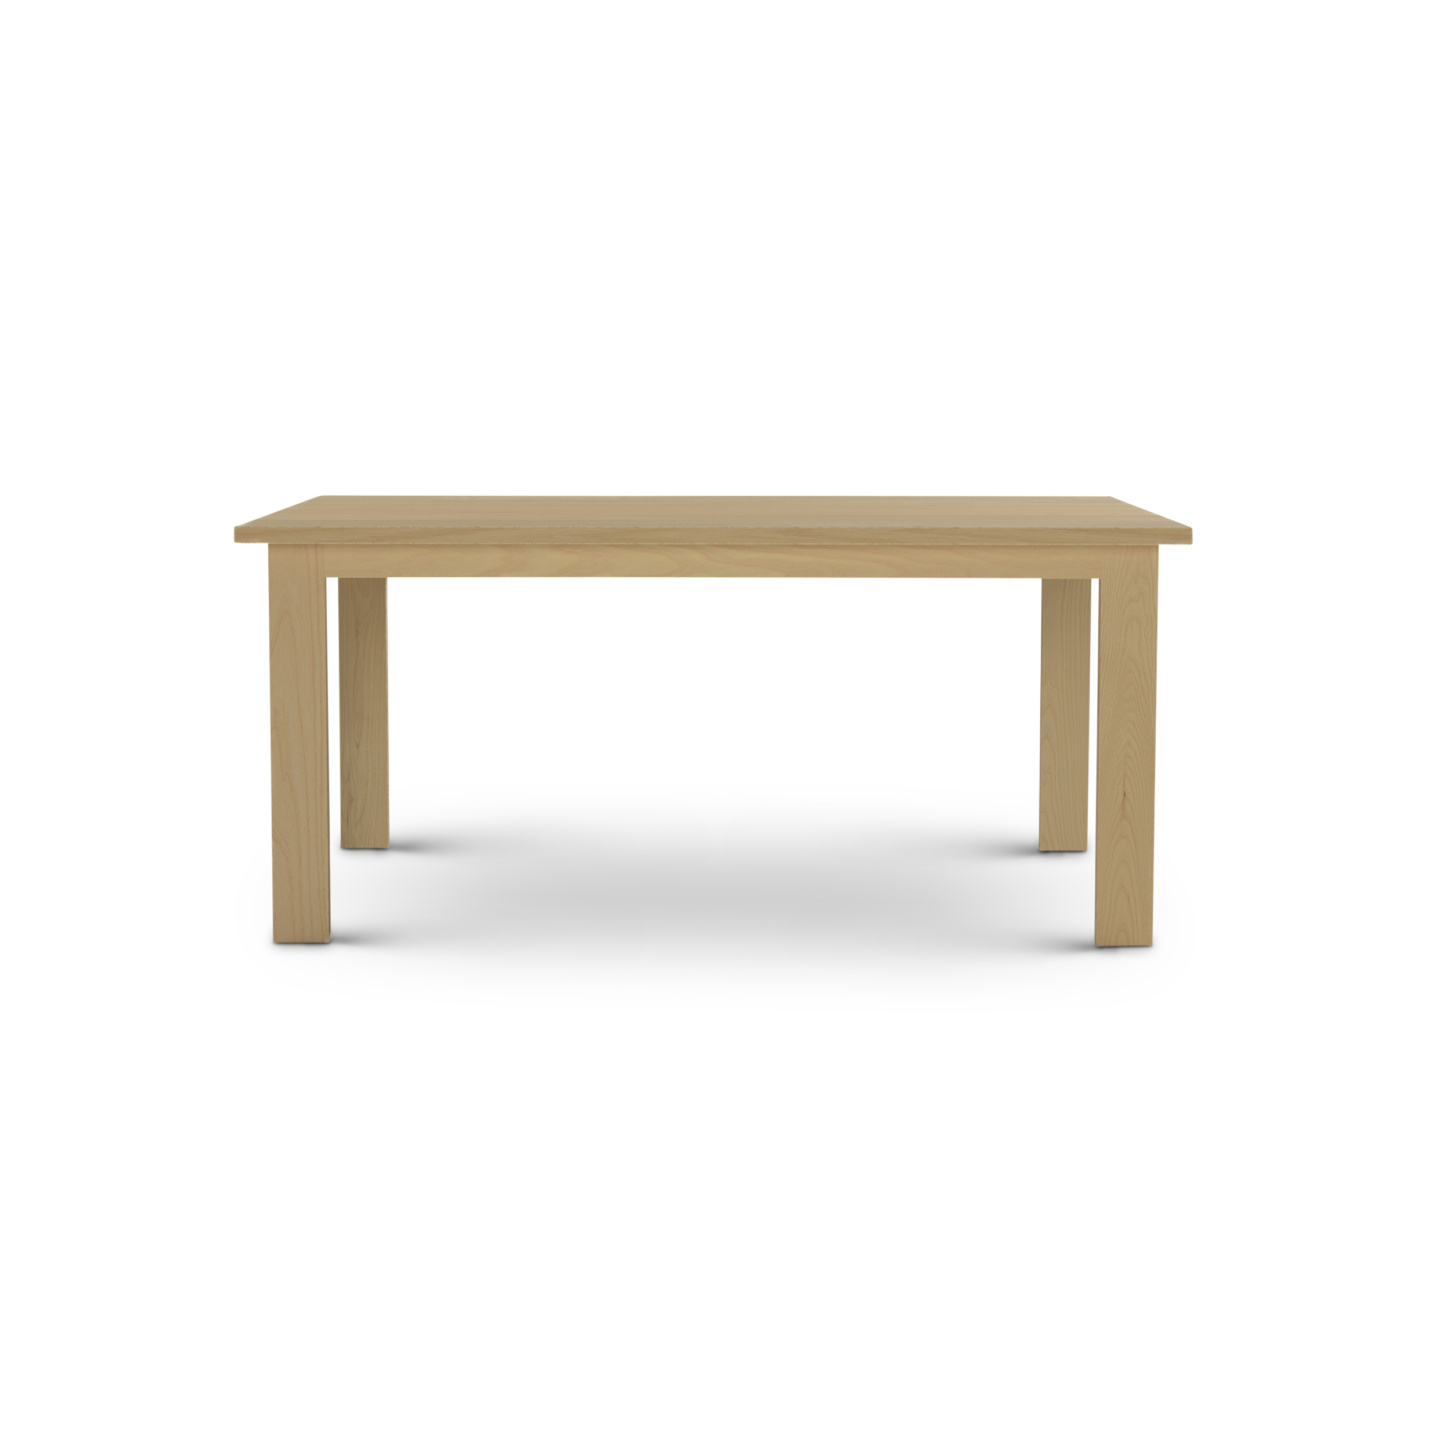 Solid Ash Nordic Table made in the Midwest